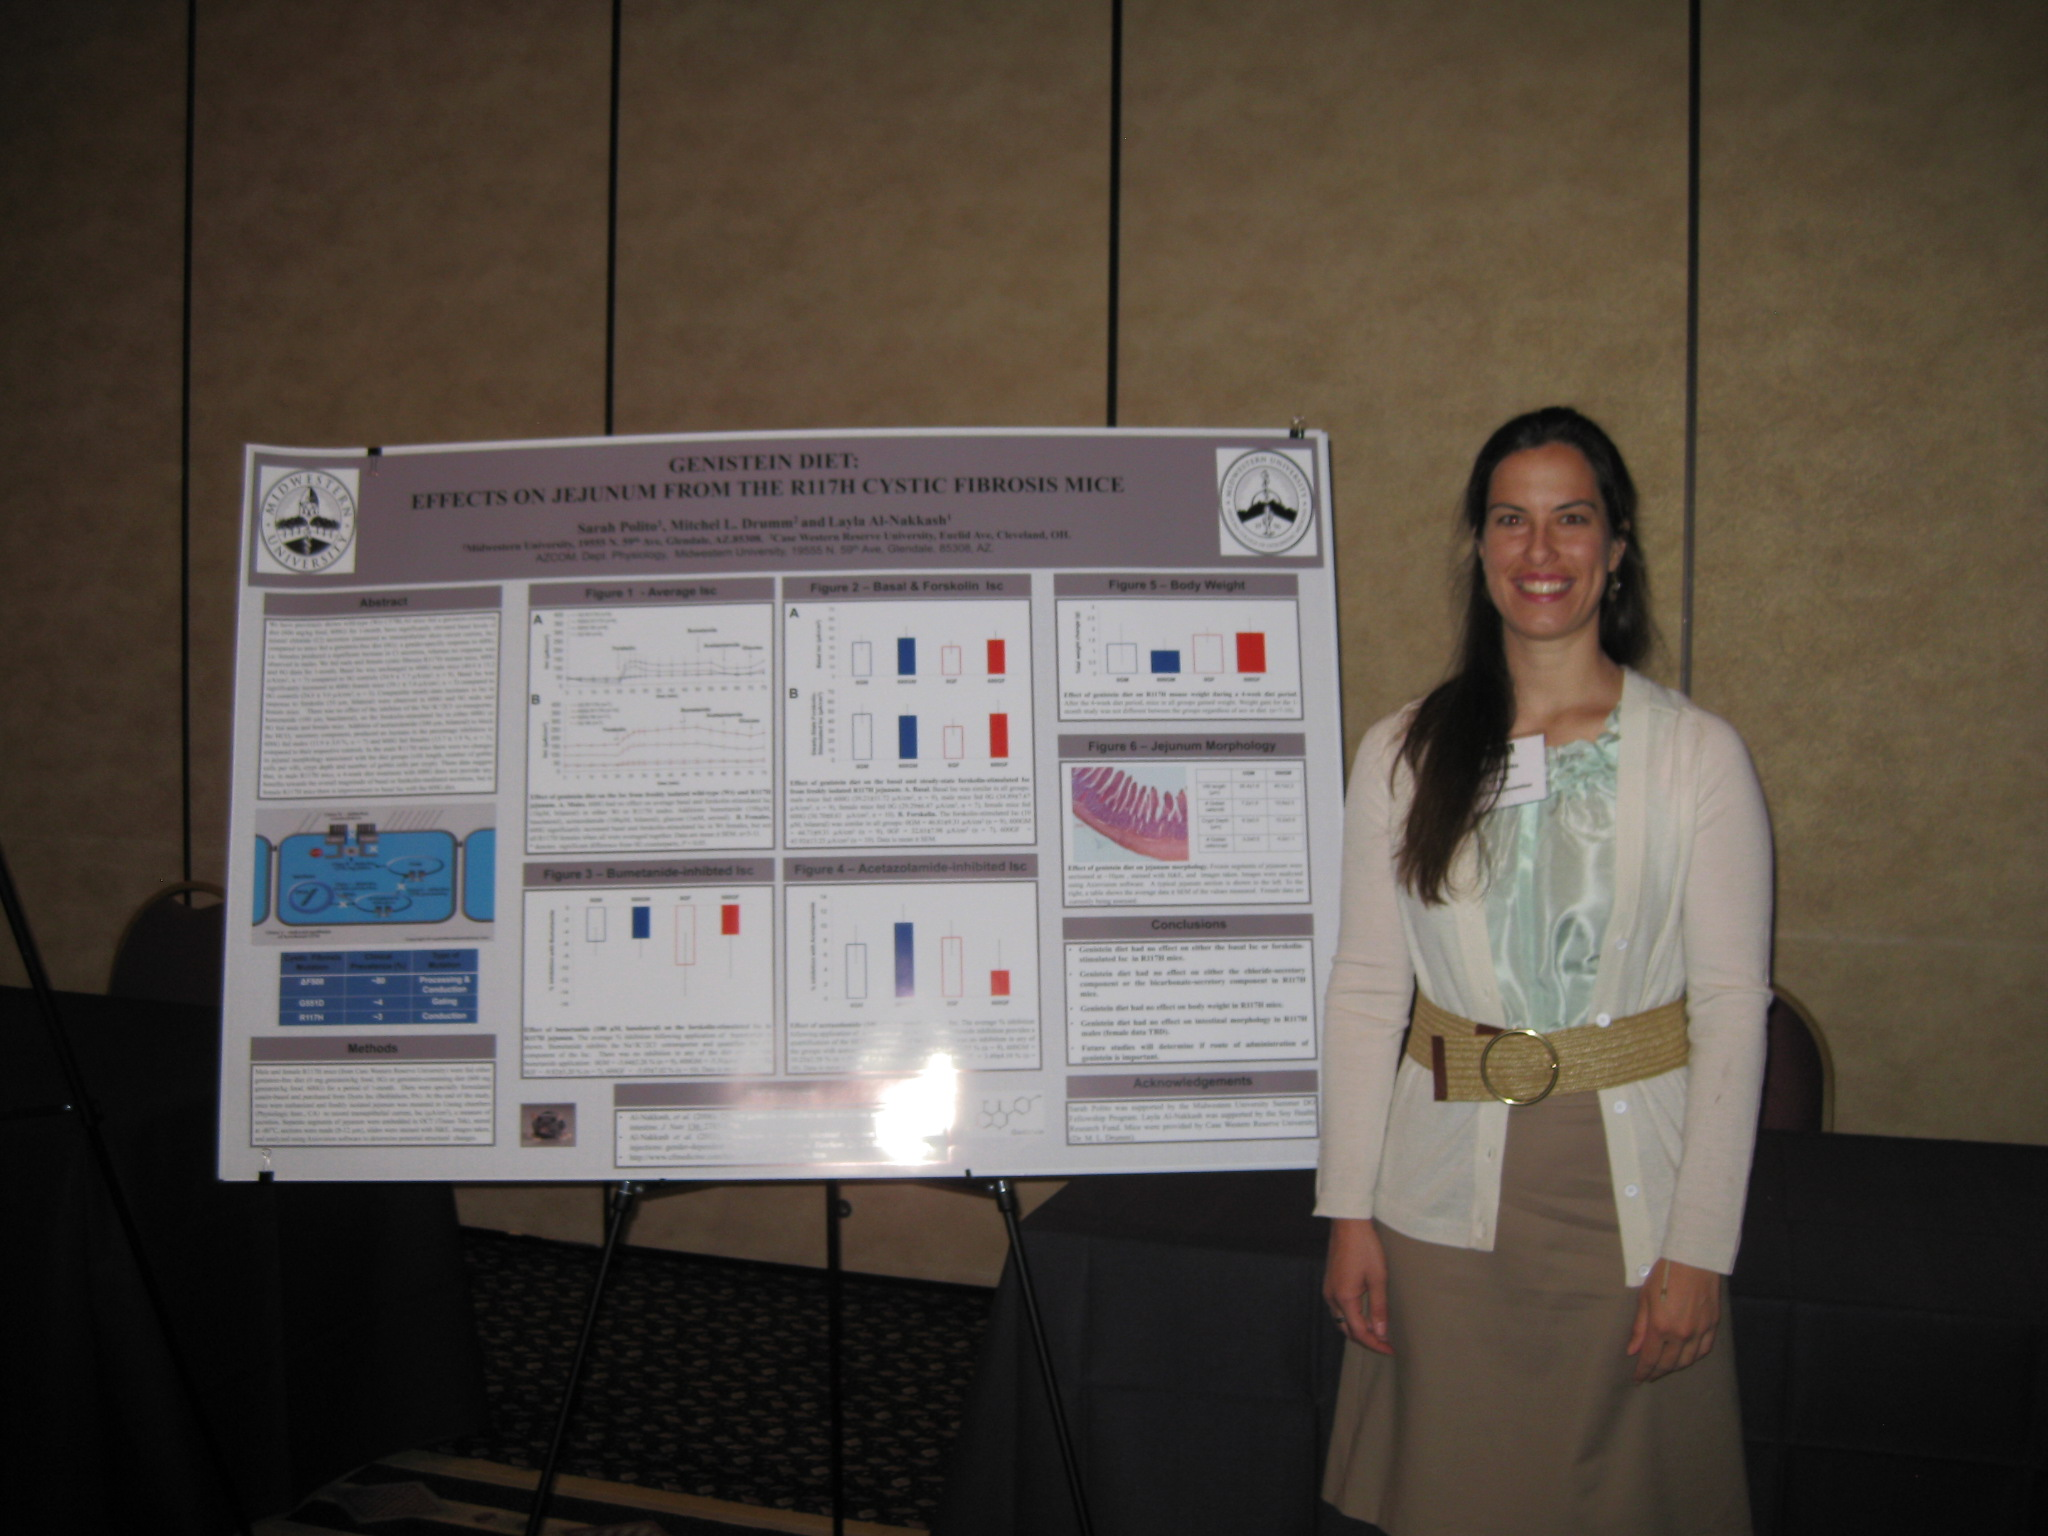 Sarah Polito MSII- presenting data at ACP 2012